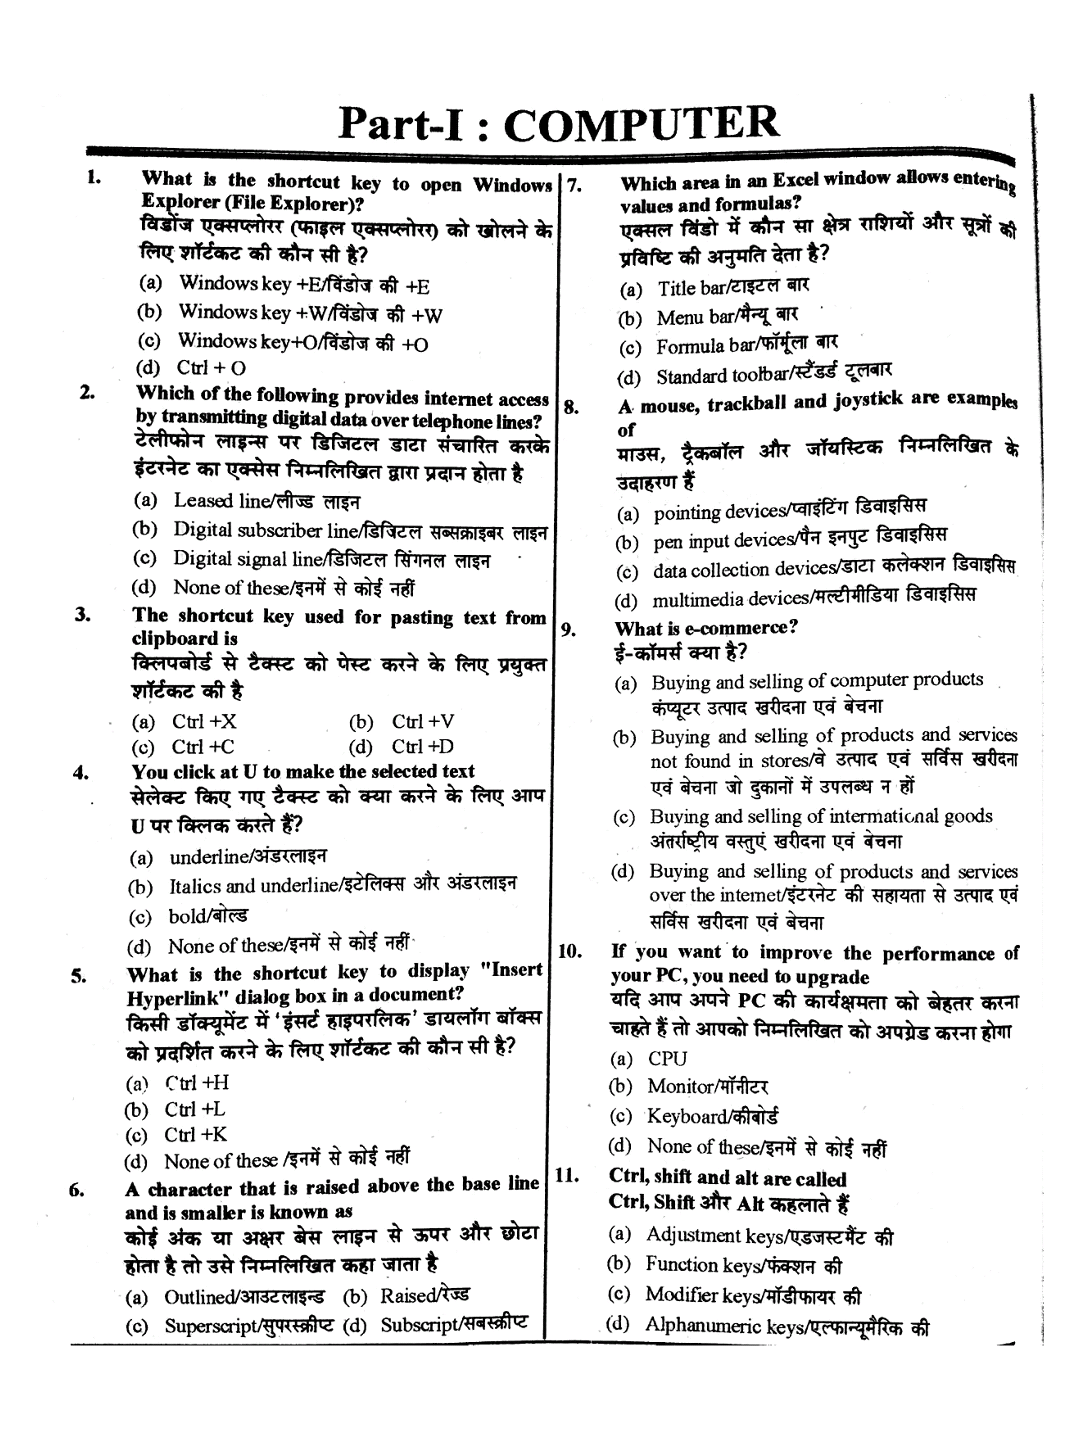 Up Lekhpal Previous Question Paper Pdf